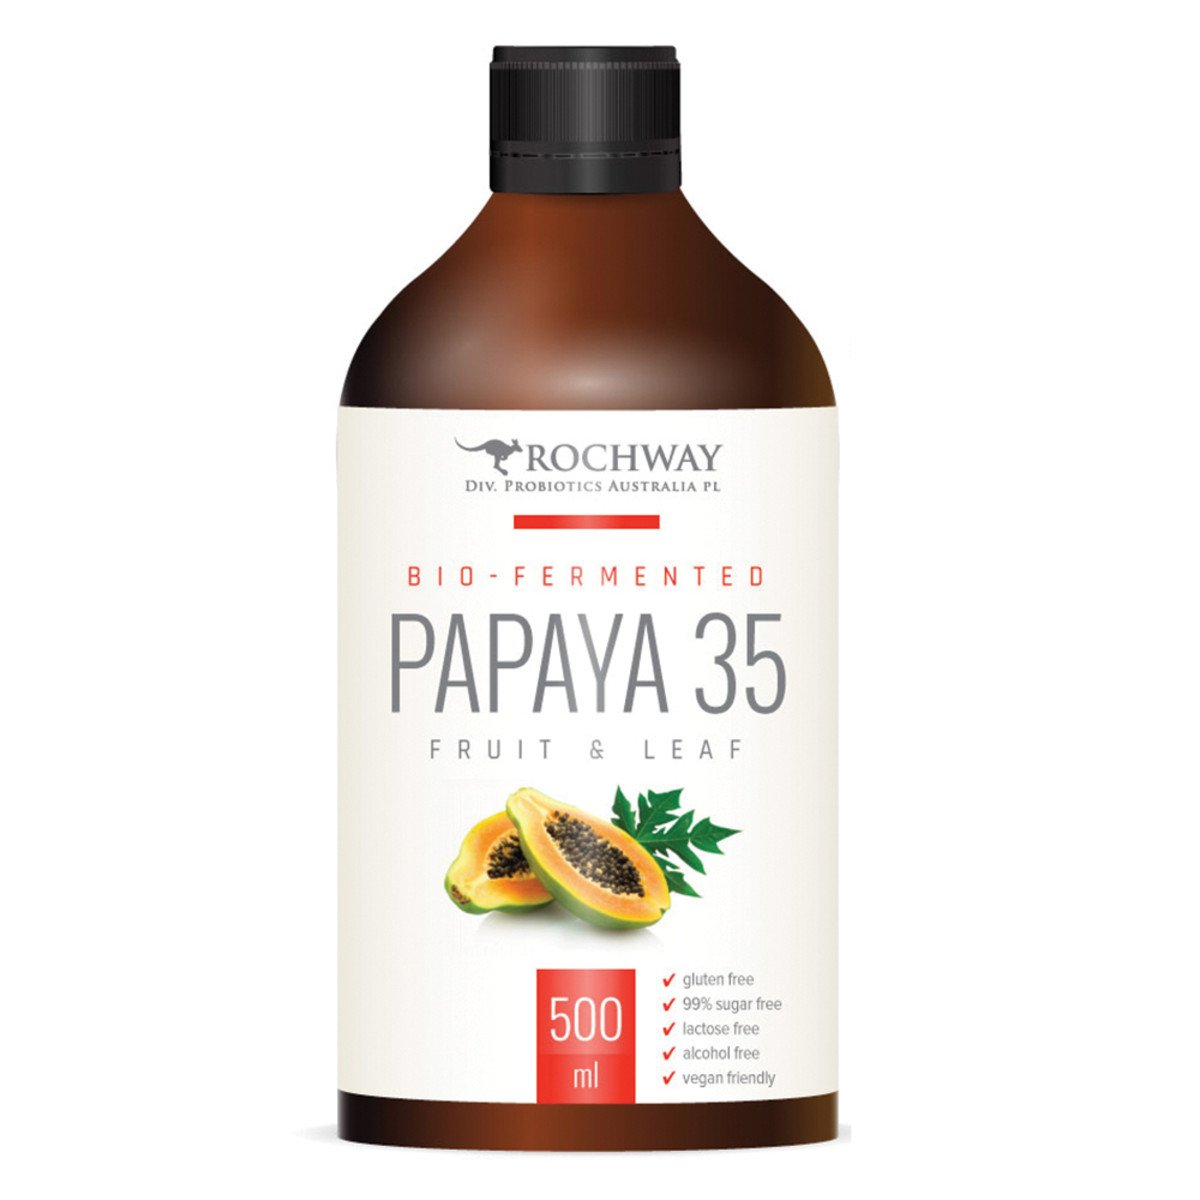 ROCHWAY Bio-Fermented Papaya 35 Fruit & Leaf 500ml